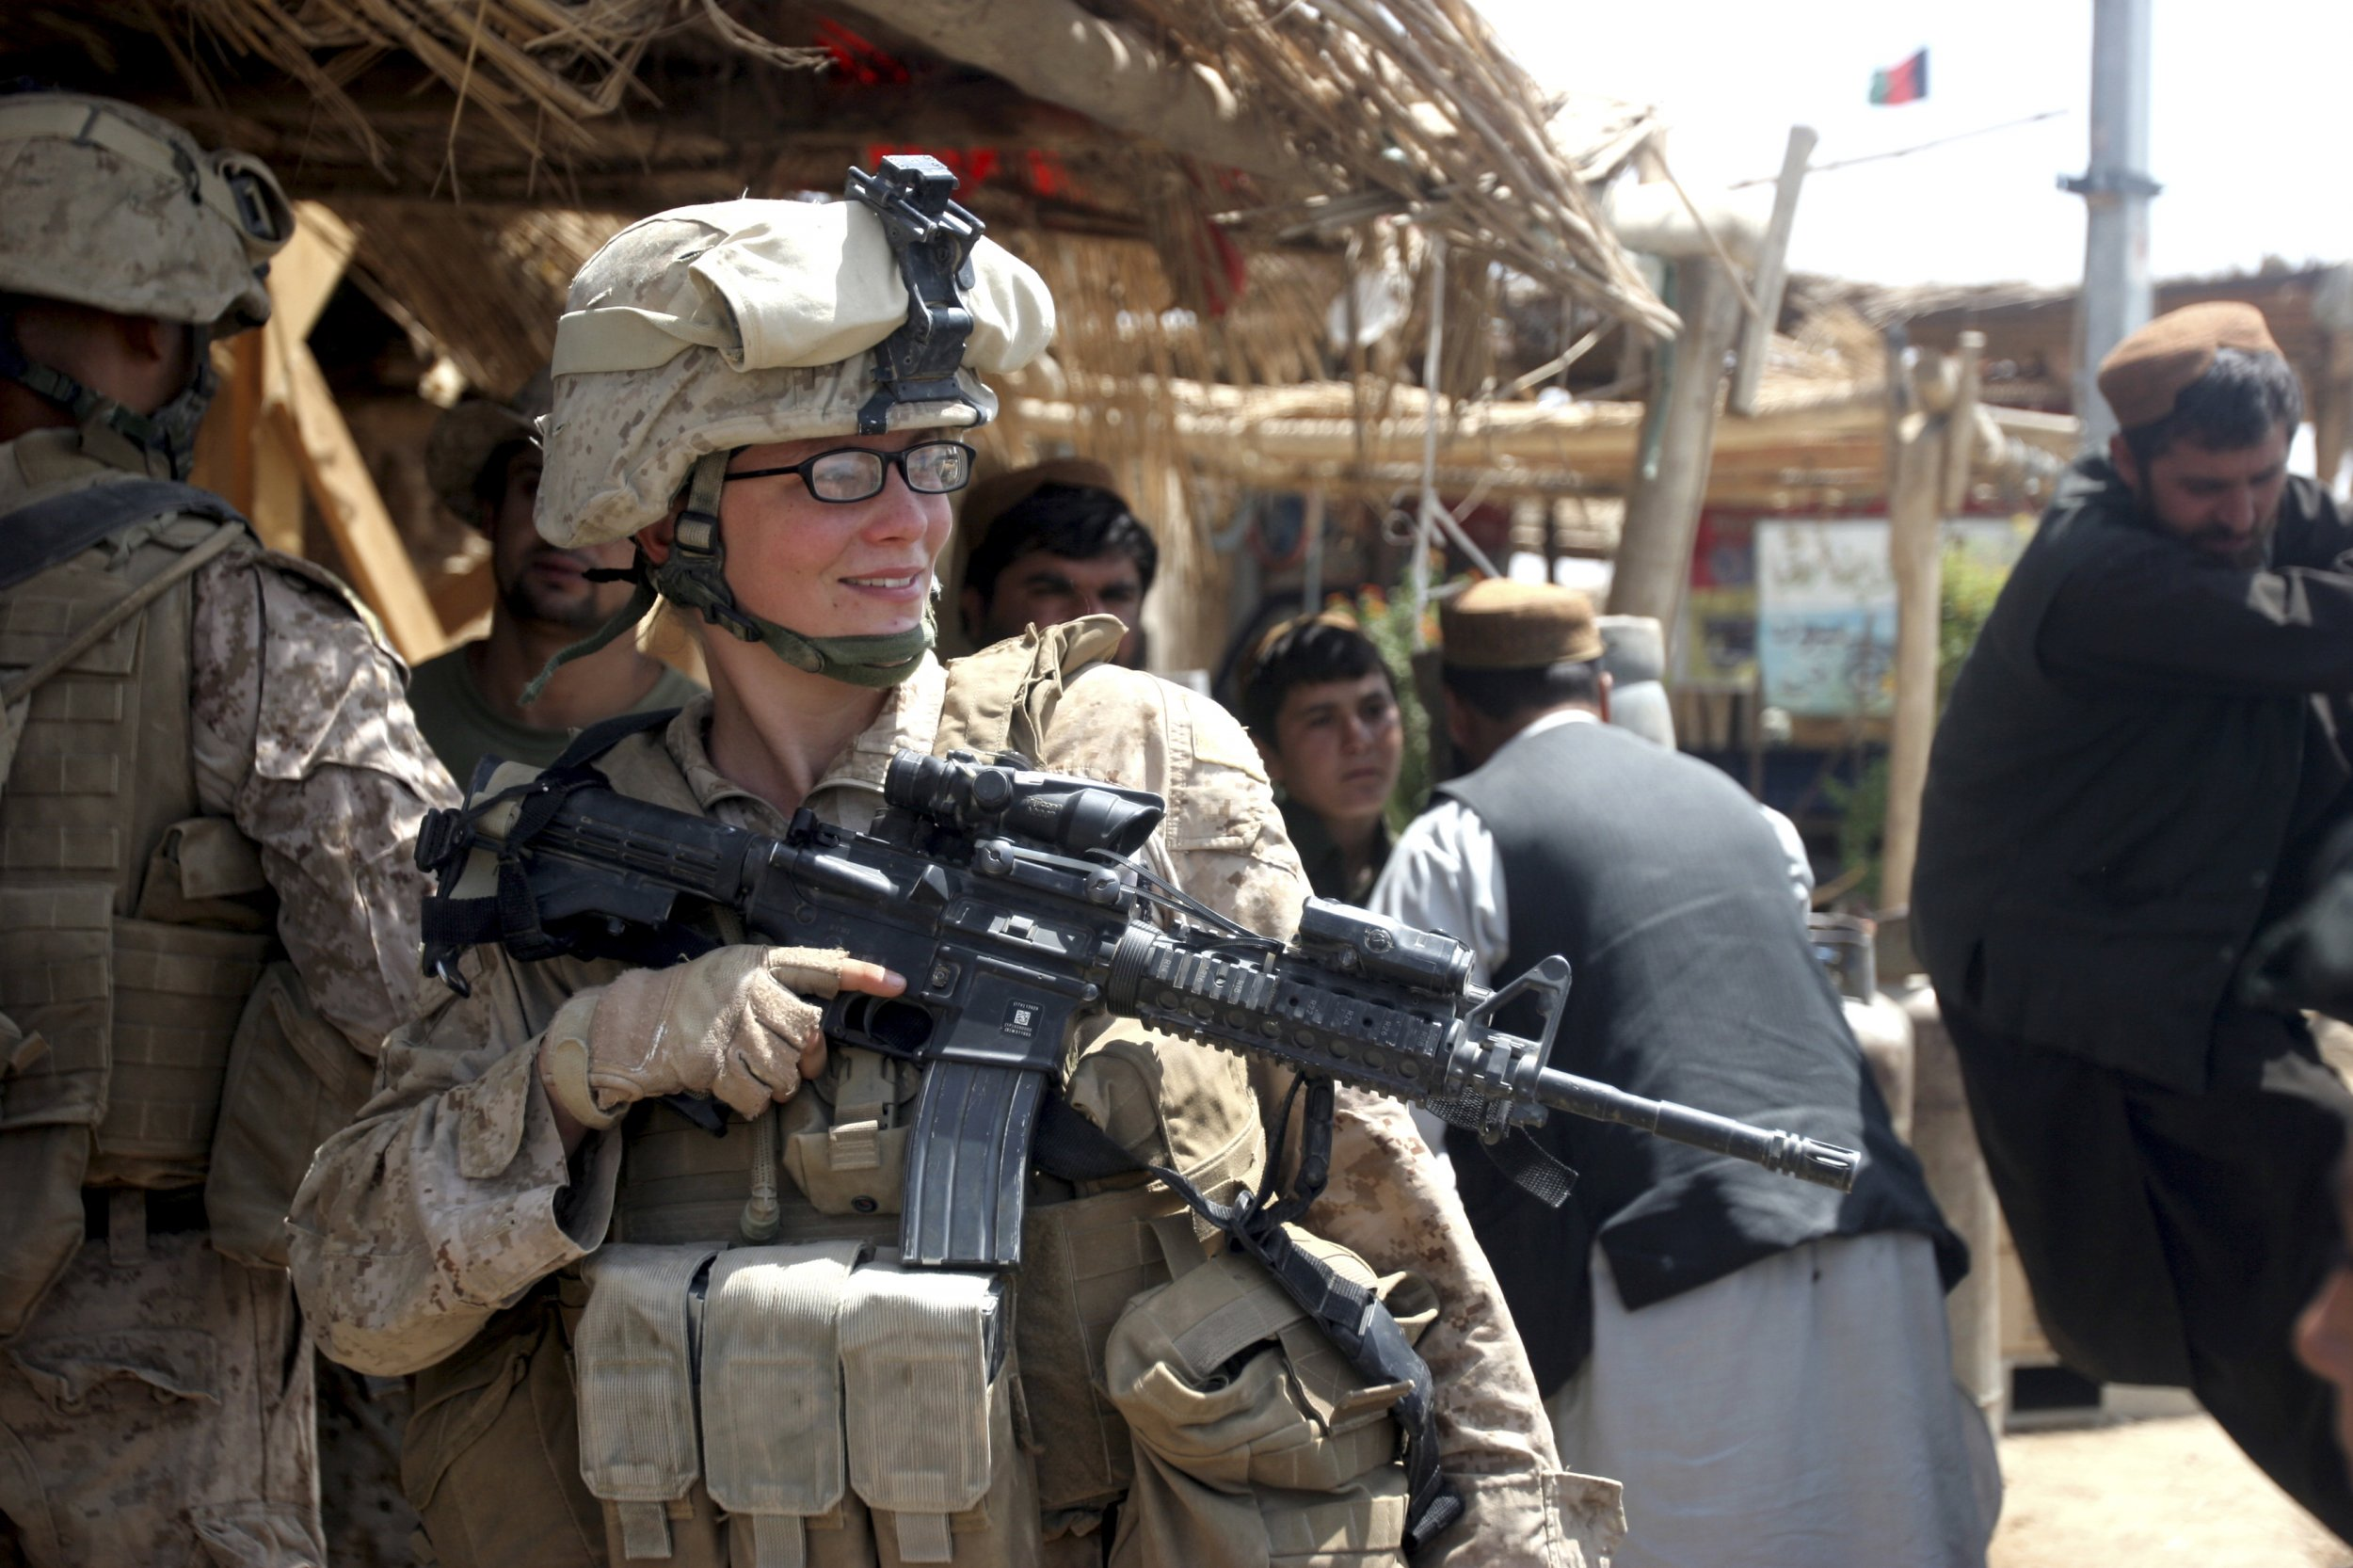 Rather Femal naked marine afghanistan topic simply